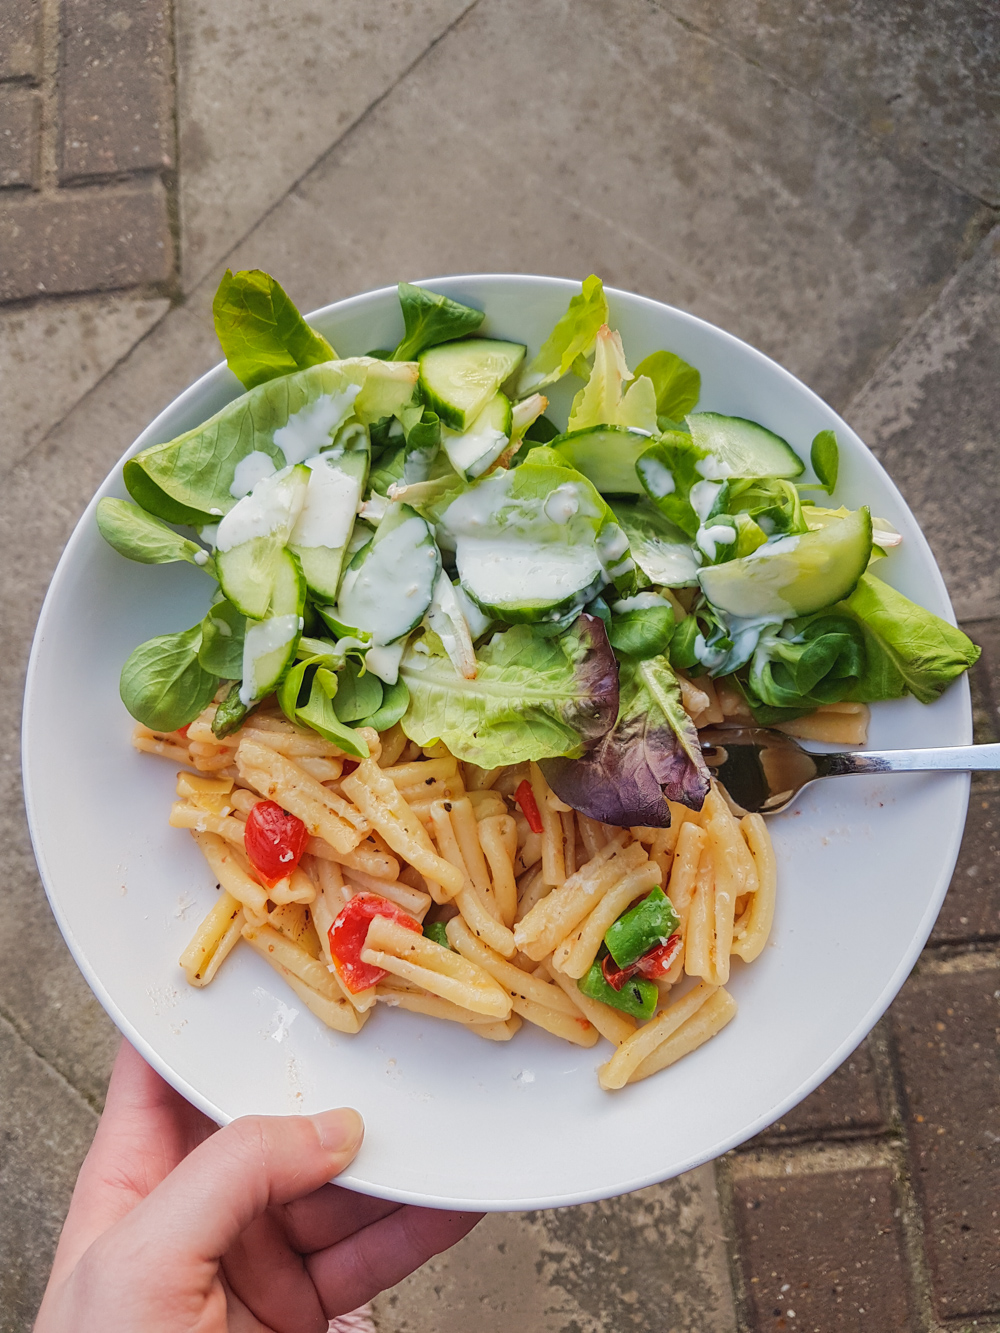 Tomato, Garlic and Asparagus Pasta with Salad